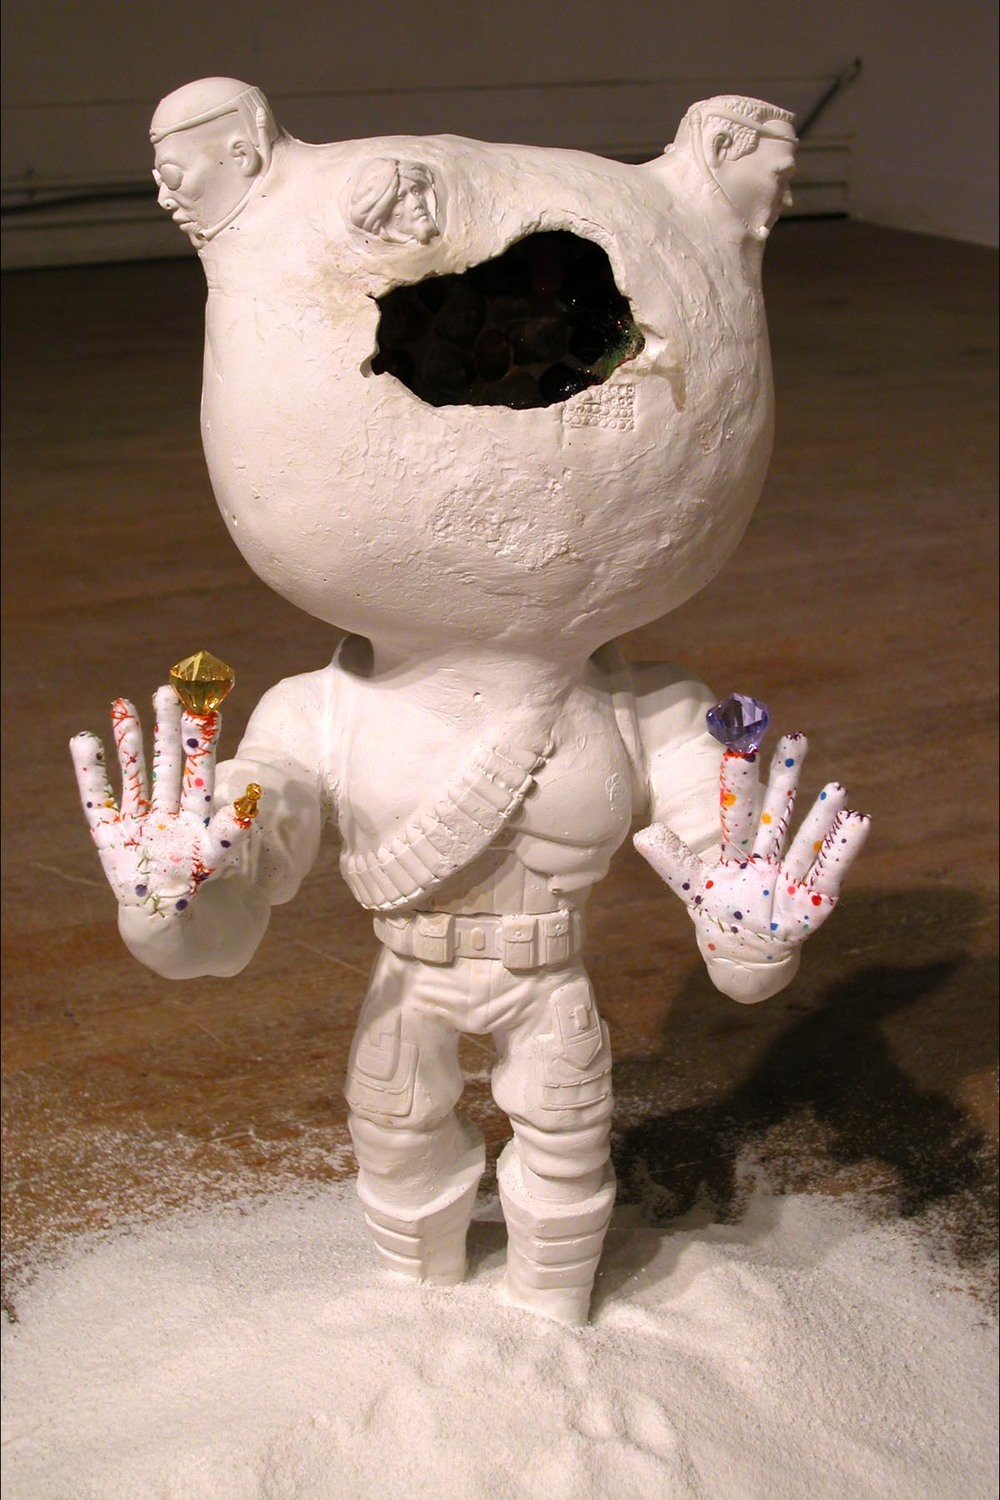 Extreme Soldier (Candy) , 2004.  Installed at Living Arts, Tulsa, Oklahoma as part of  Too Much Candy . Plaster, candy, resin, fabric, thread, beads, detergent. Variable dimensions, about 22 inches tall.